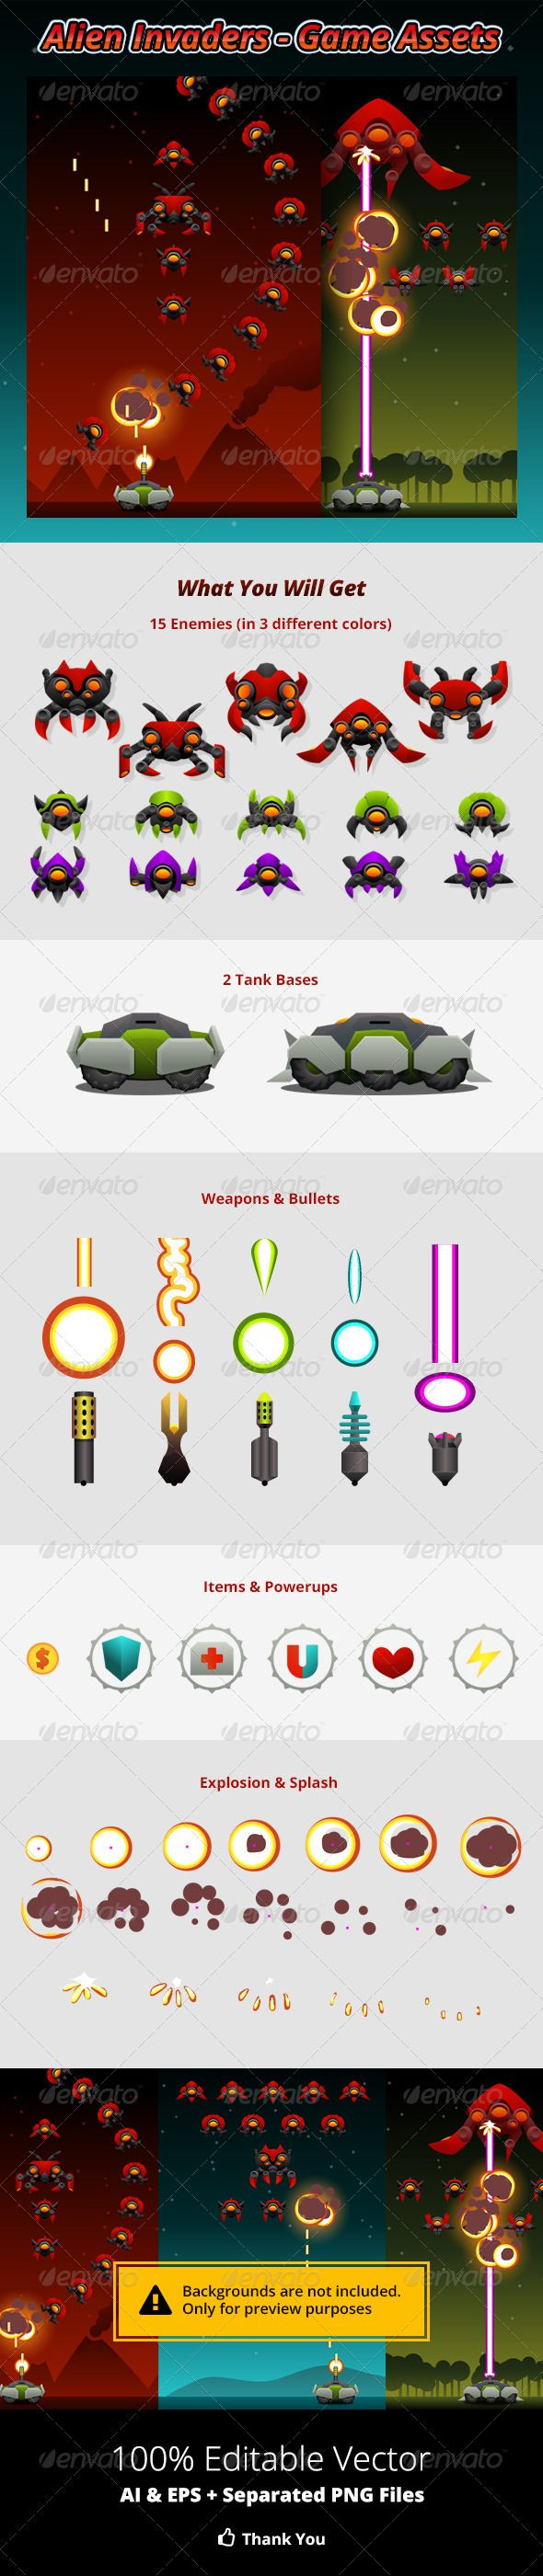 Alien Invaders Game Assets Download here: https://graphicriver.net/item/alien-invaders-game-assets/8574750?ref=KlitVogli